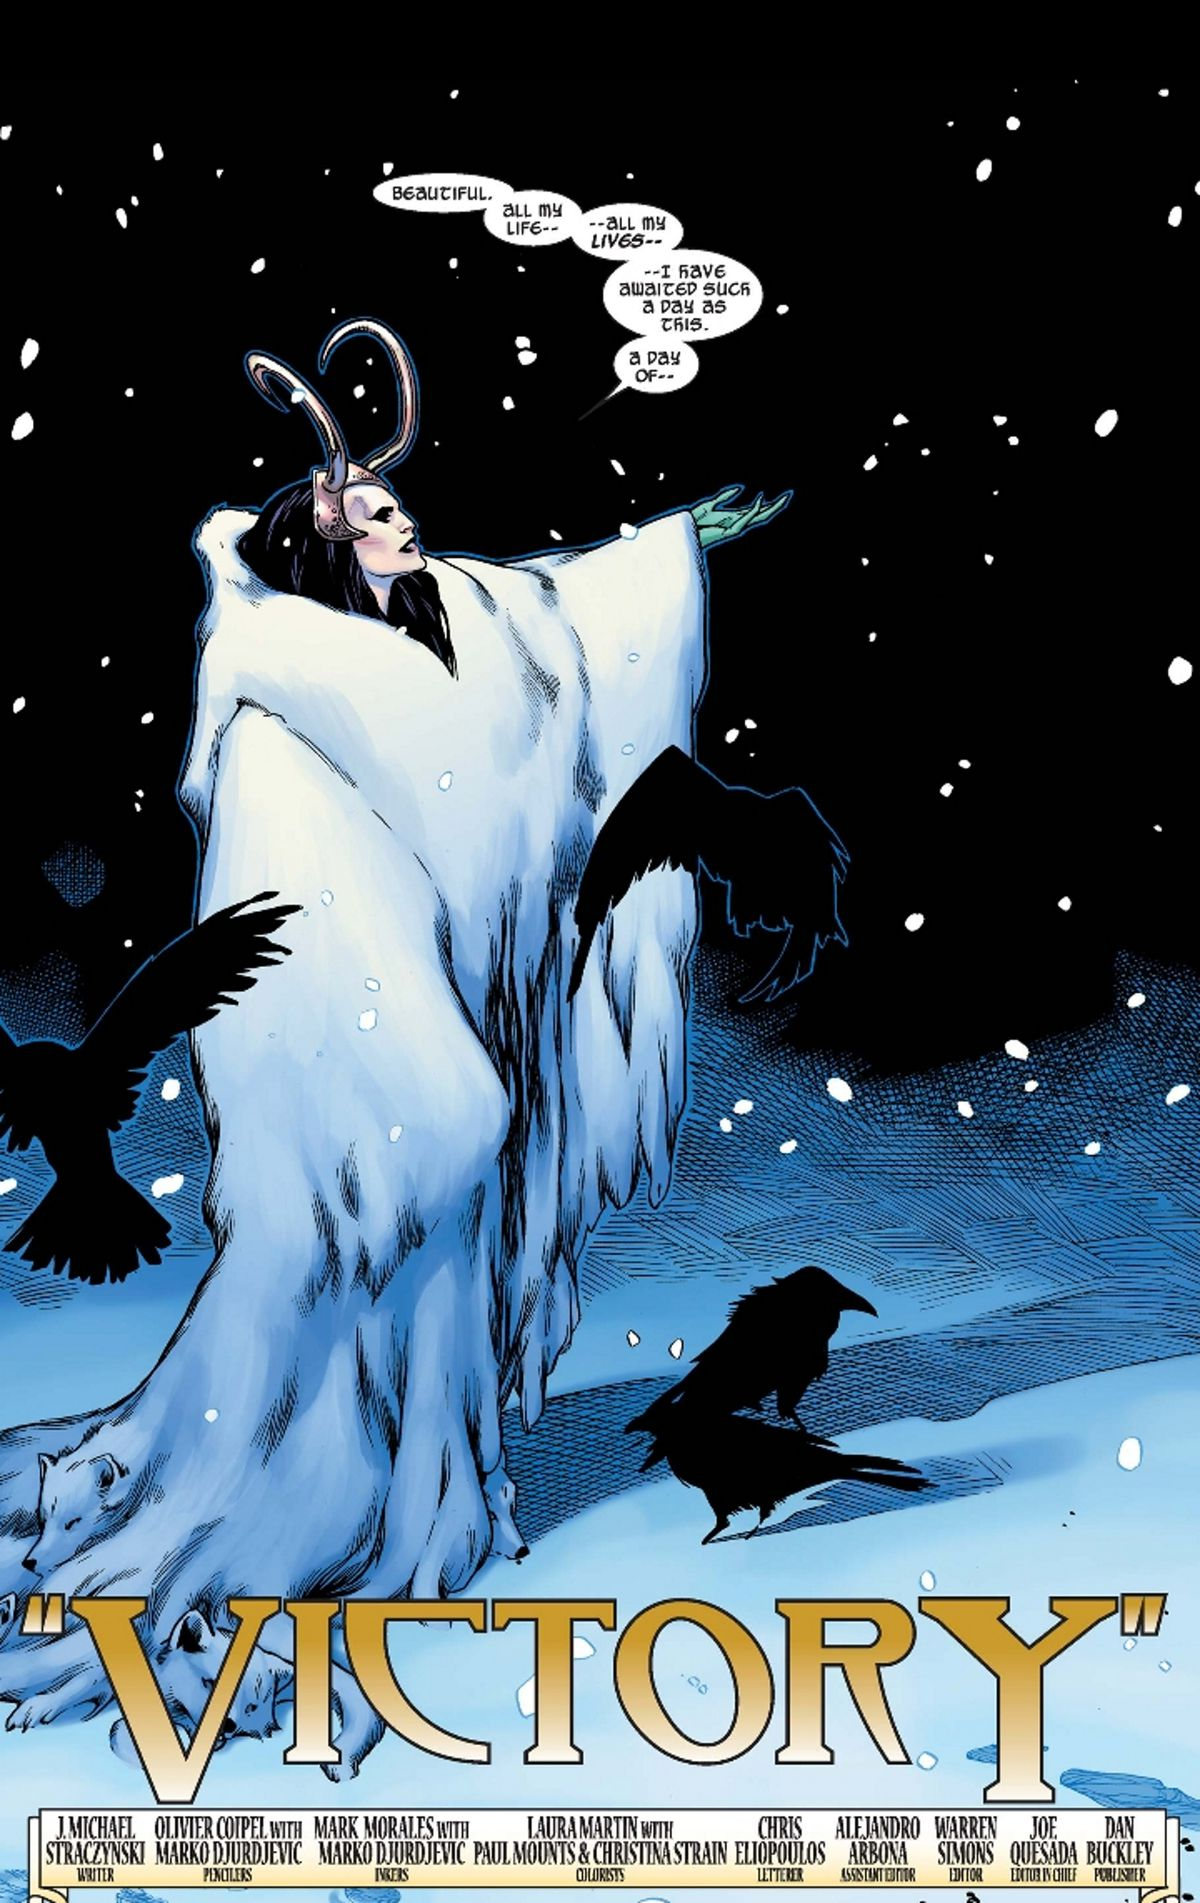 Lady Loki catches snowflakes and muses evil-y about her victory, wearing a horned circlet and a giant white fur coat.